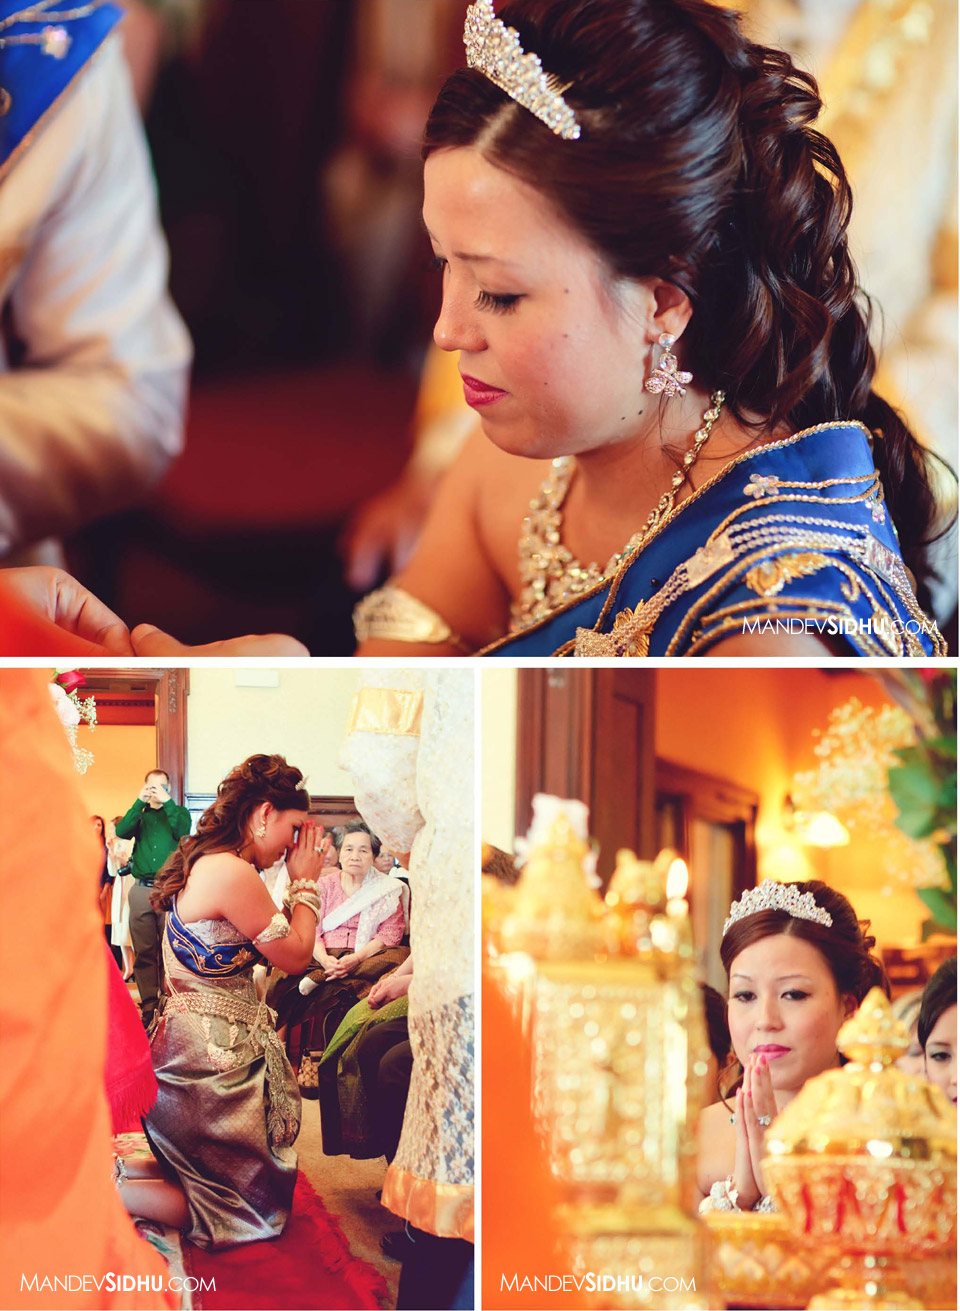 Chinese-Cambodian bride honoring parents during khmer ceremony